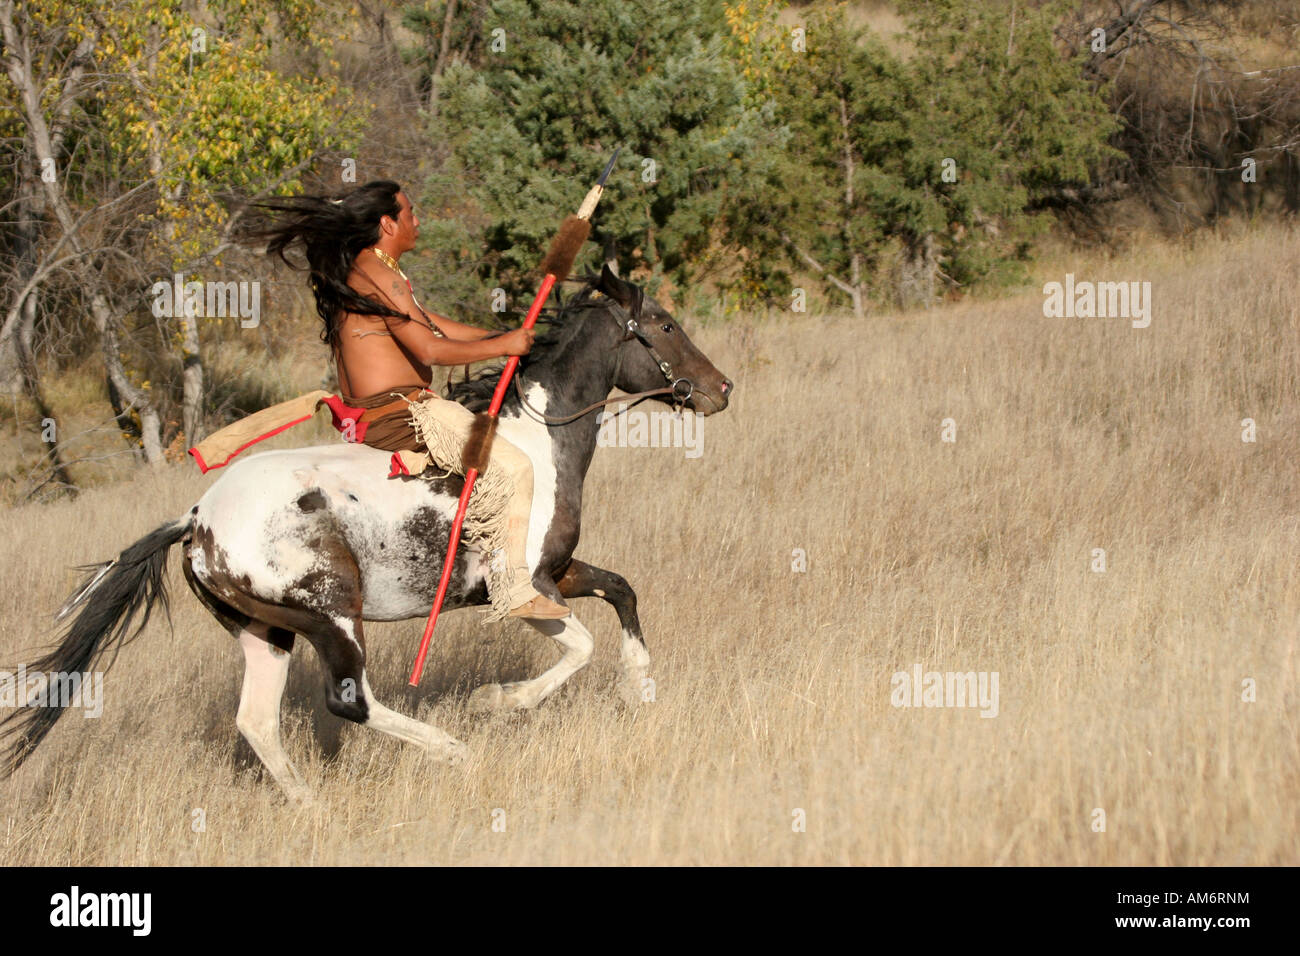 A Native American Indian man riding bareback on a horse in ...